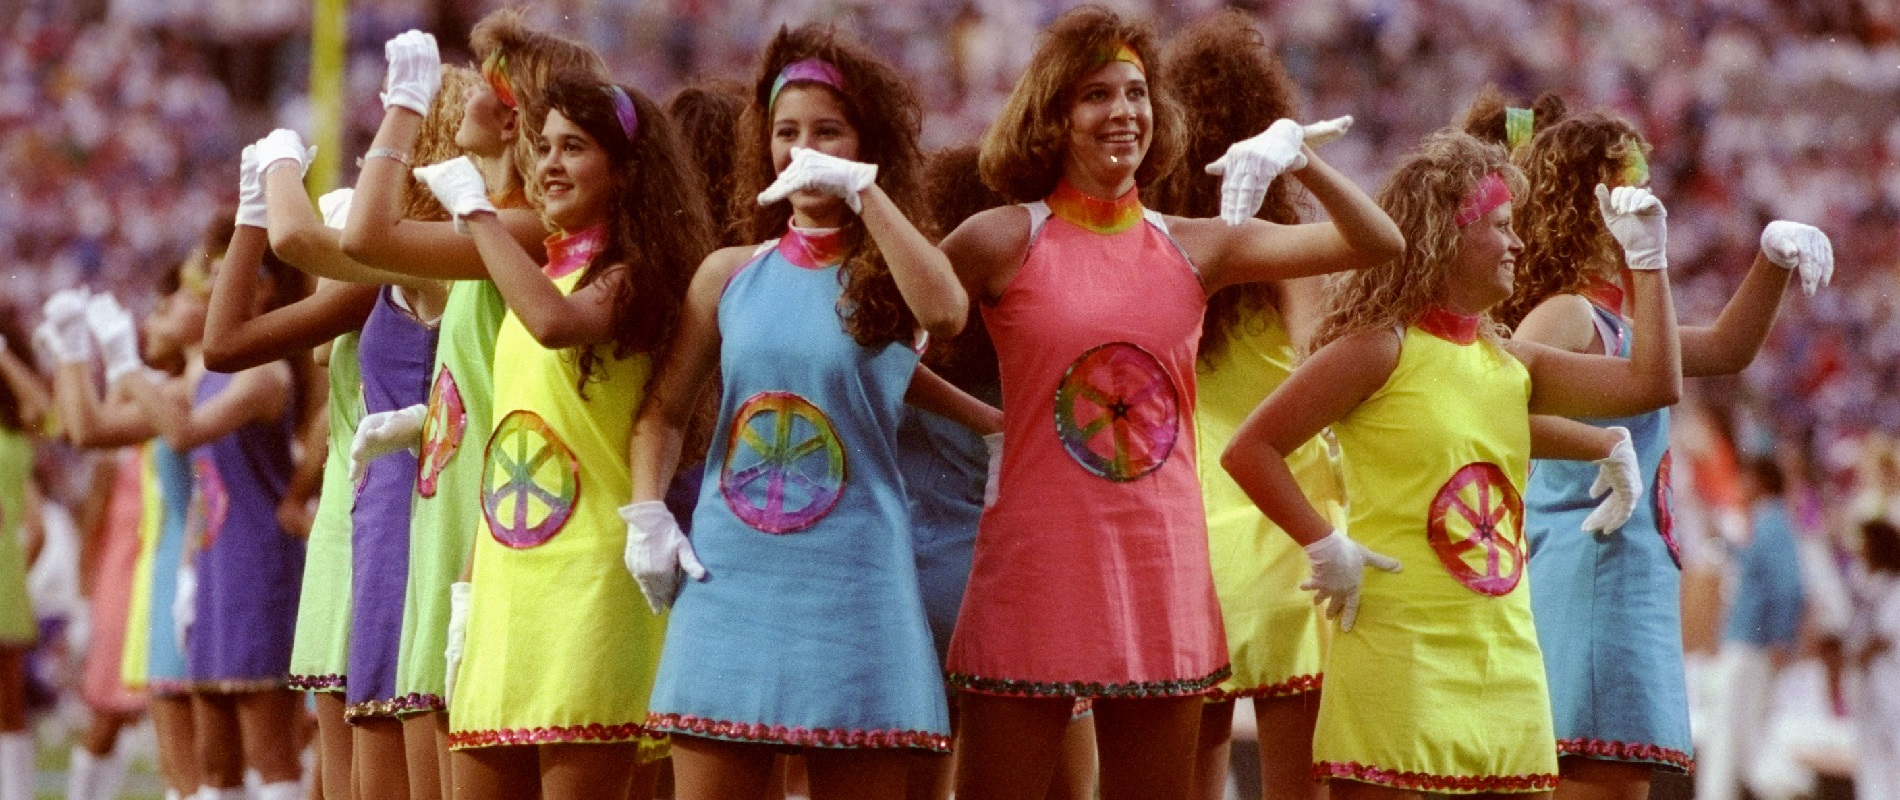 The Super Bowl XXV halftime show was not televised until after the game. (Mike Powell/Allsport/Getty Images)